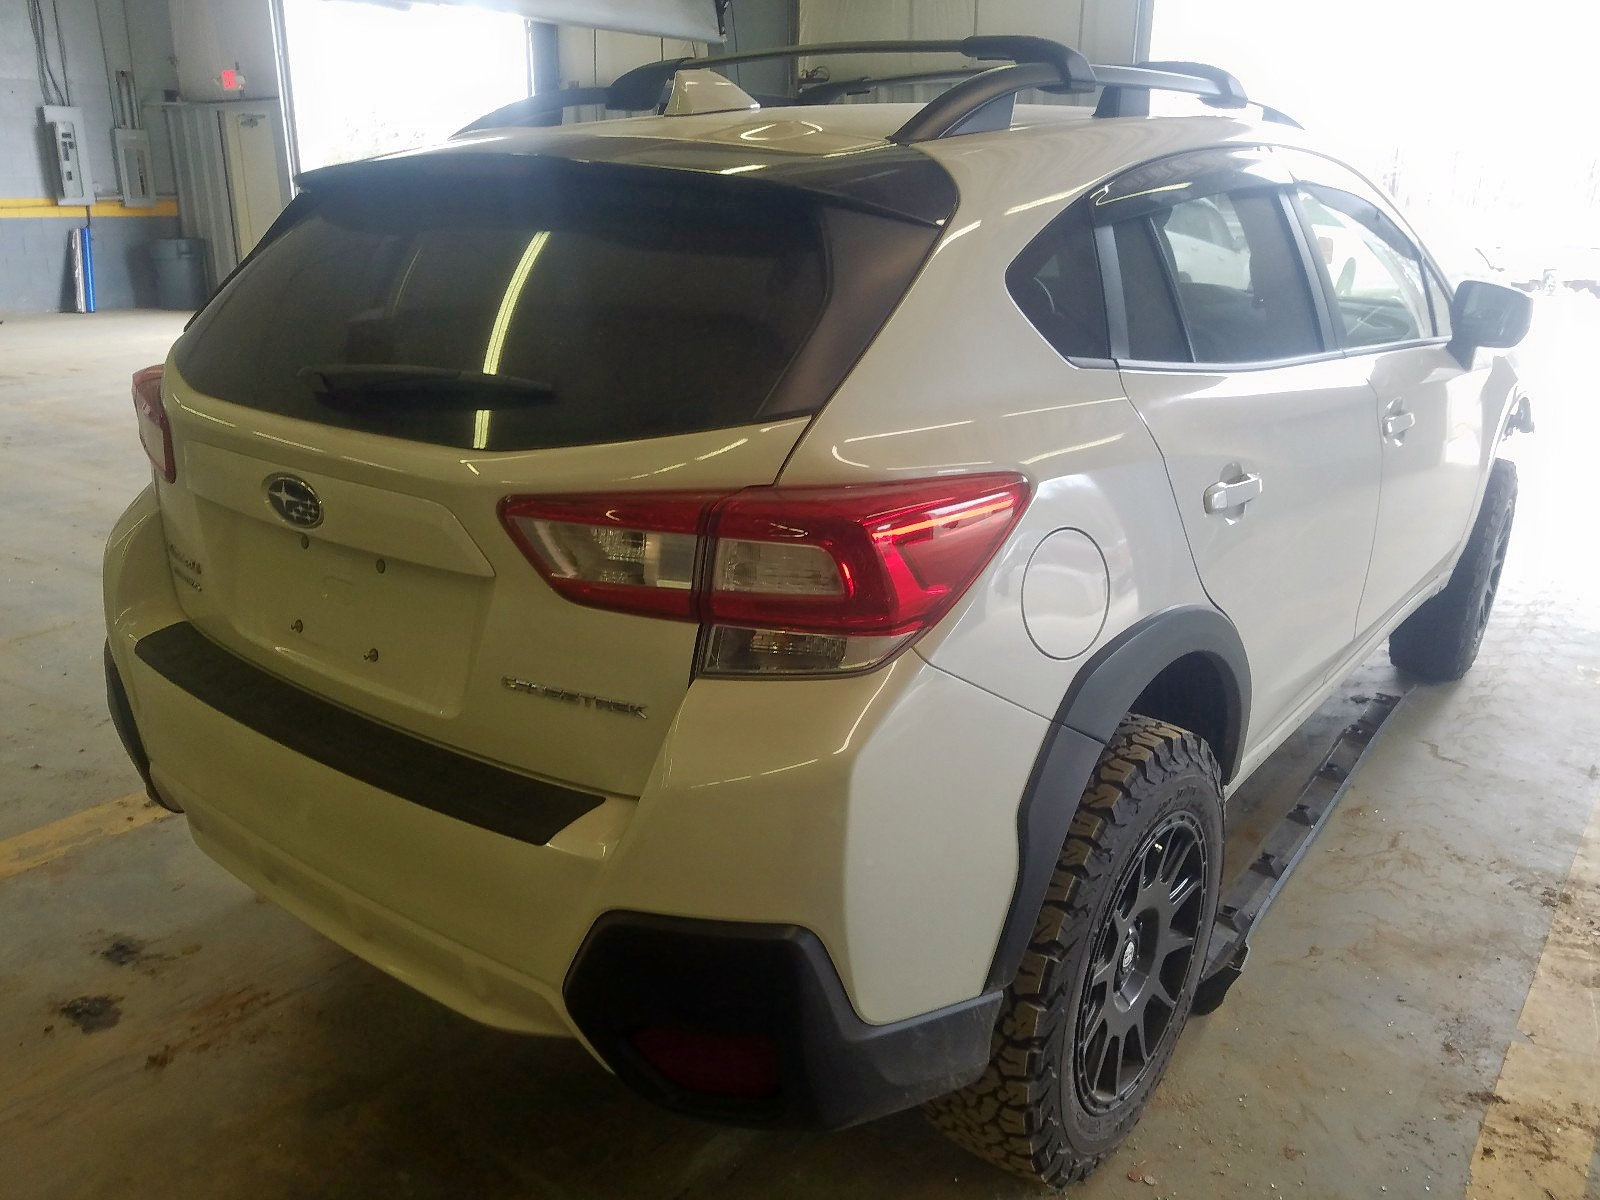 JF2GTACCXK8327139 - 2019 Subaru Crosstrek 2.0L rear view